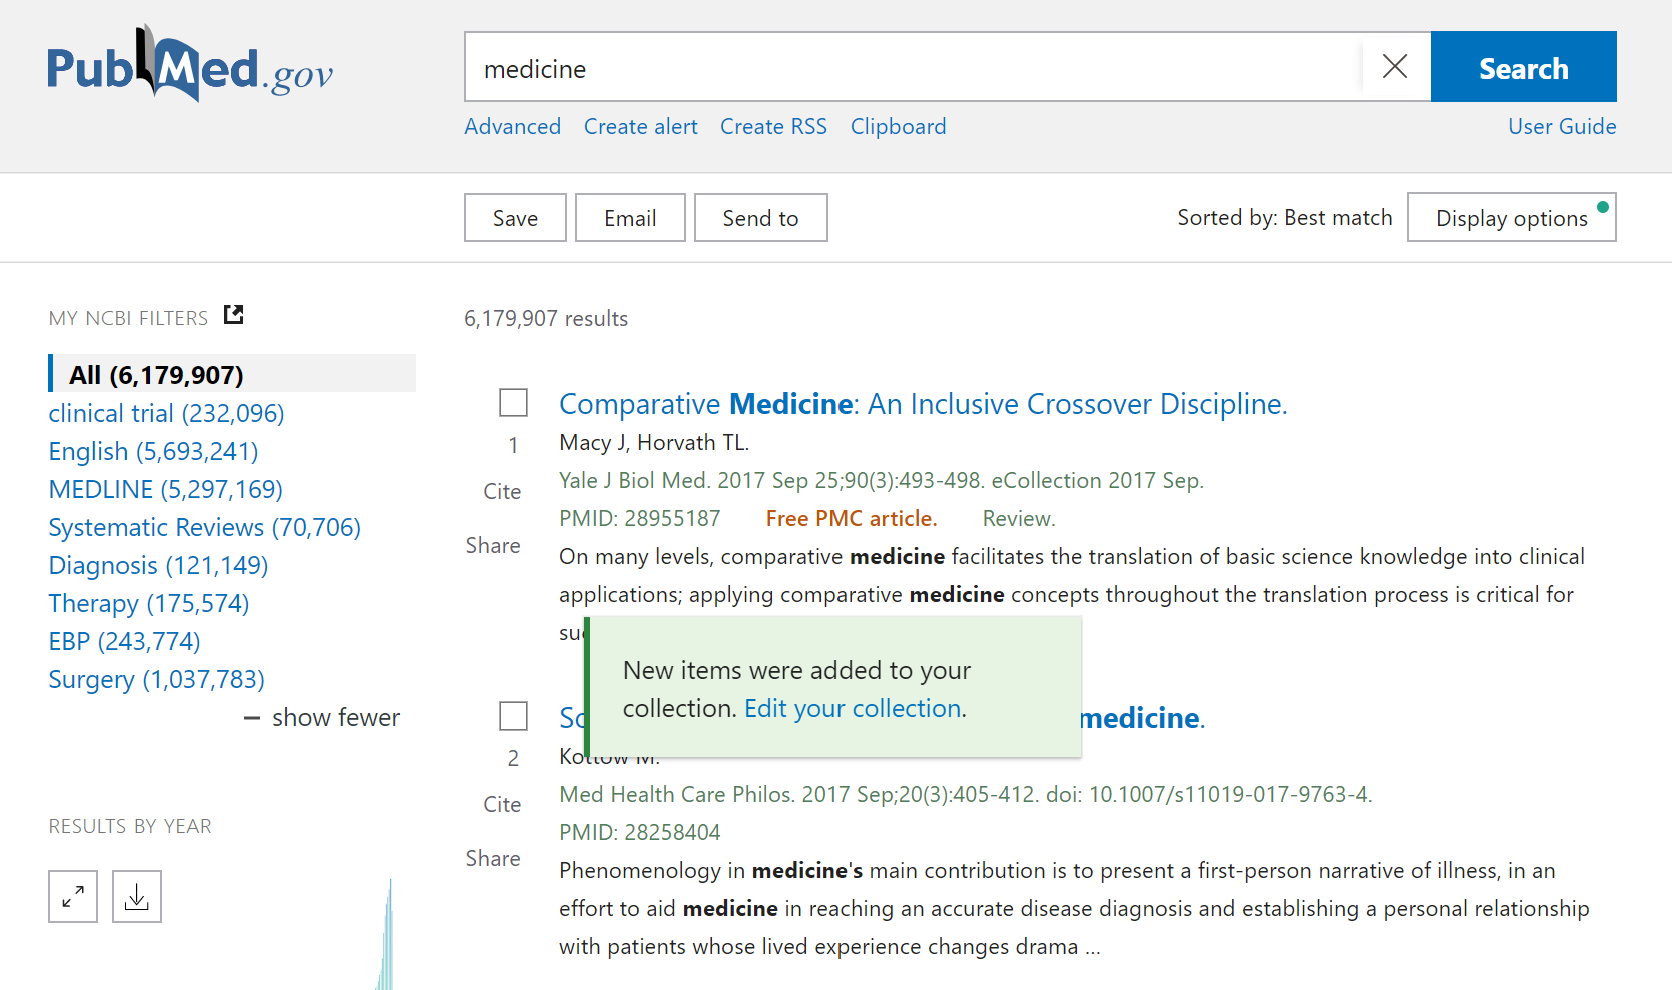 View or edit your new Collection in PubMed